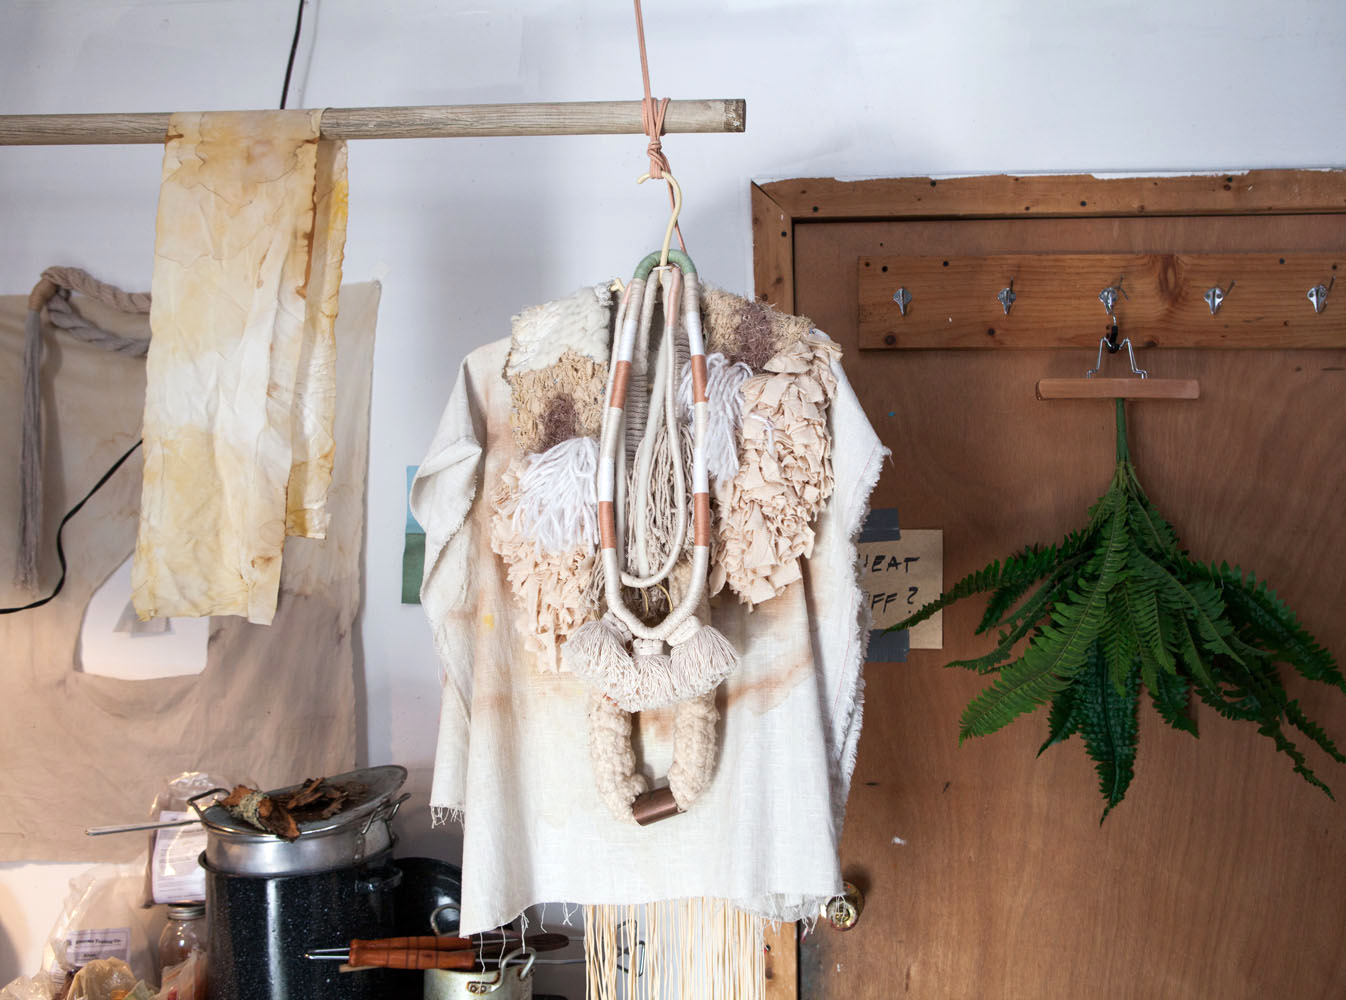 Cave Collective via sight unseen